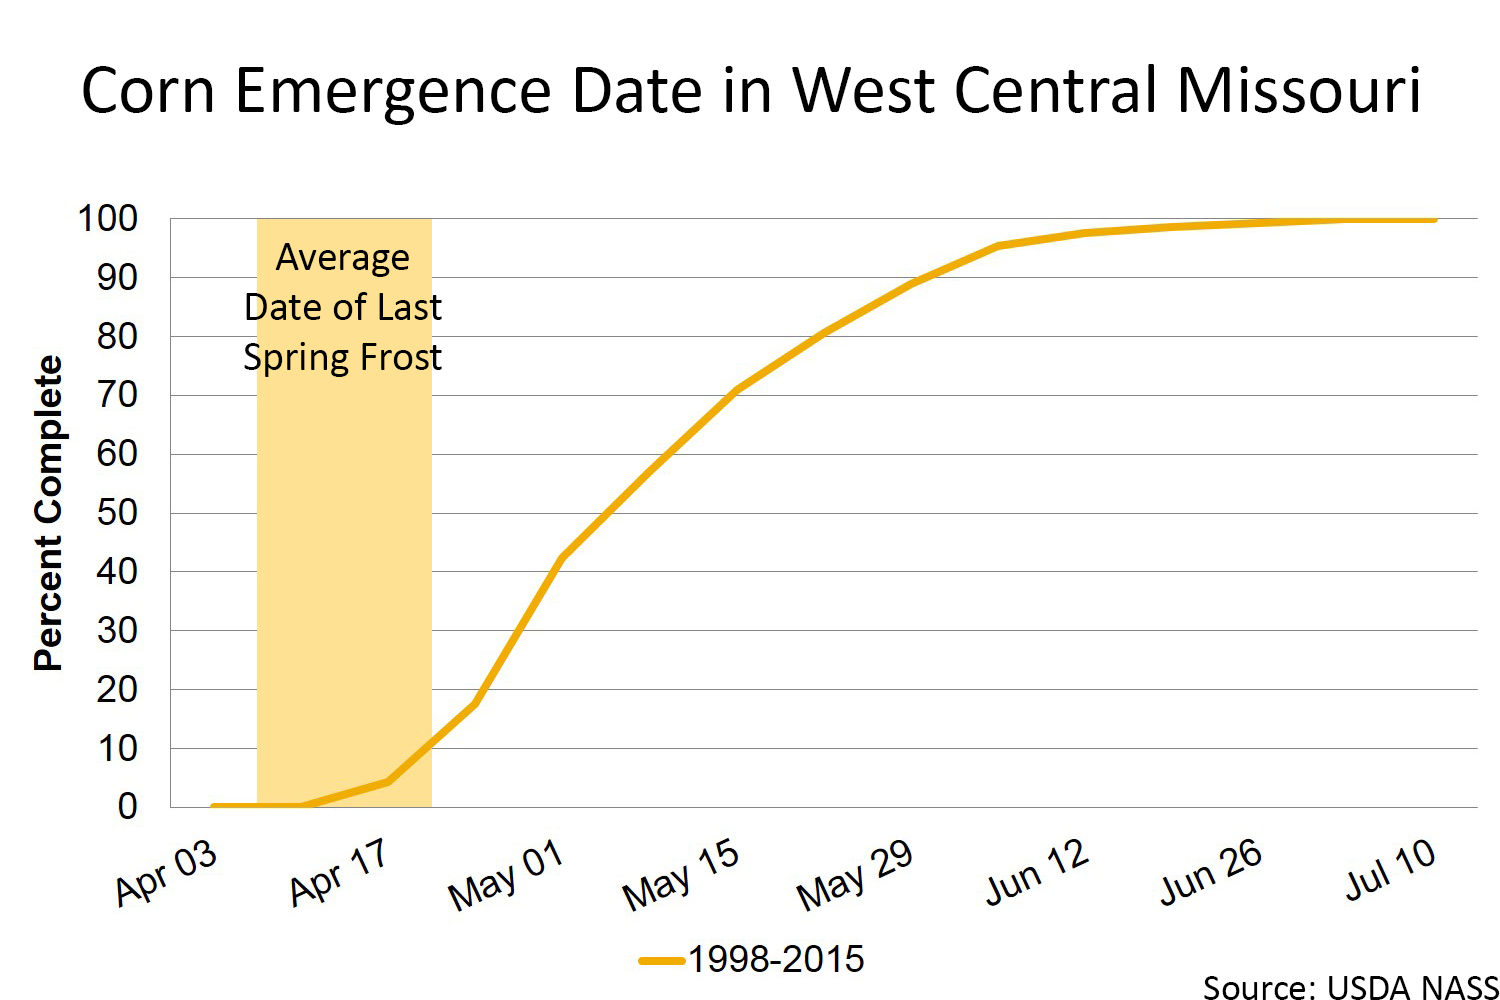 Corn emergence date in west central Missouri chart